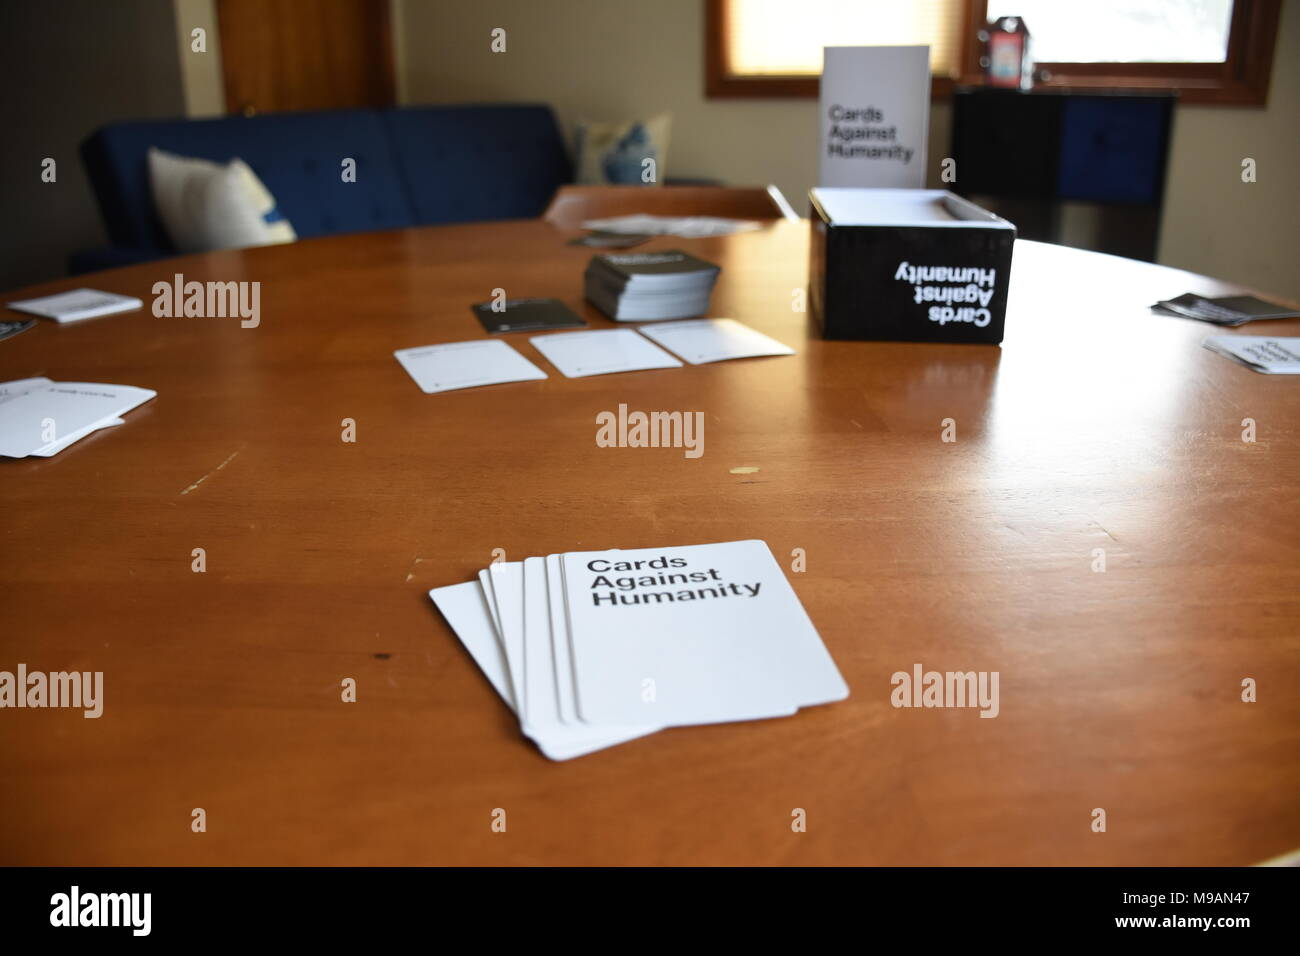 Cards Against Humanity In Play - Stock Image